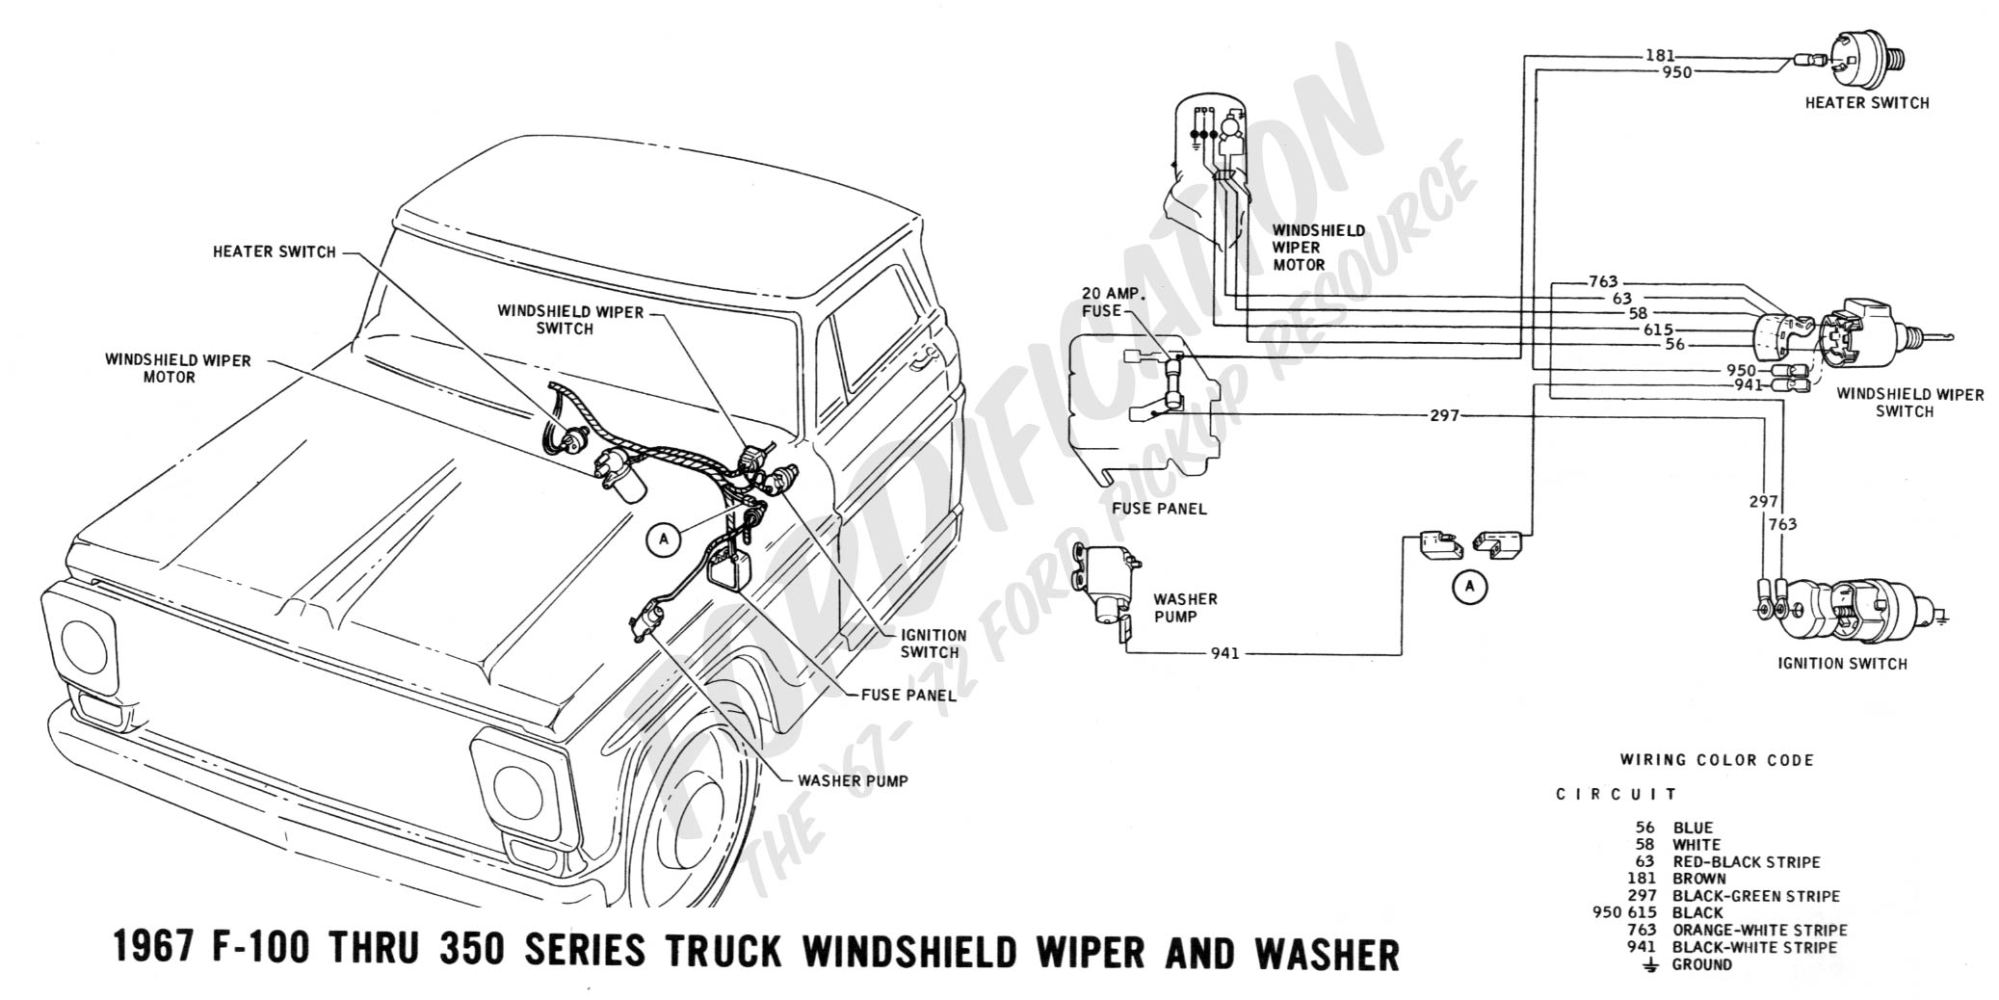 hight resolution of 1973 ford f100 fuse box wiring diagram article mix fuse box wires 1967 ford f100 wiring